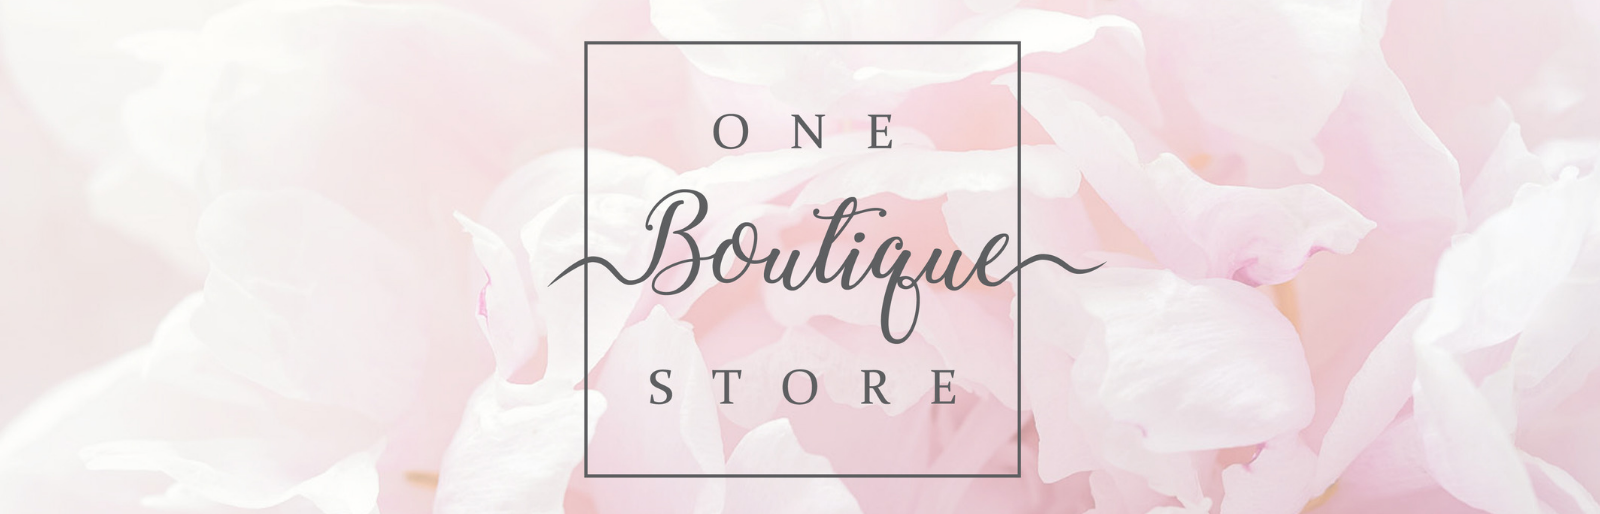 ONE Boutique Store